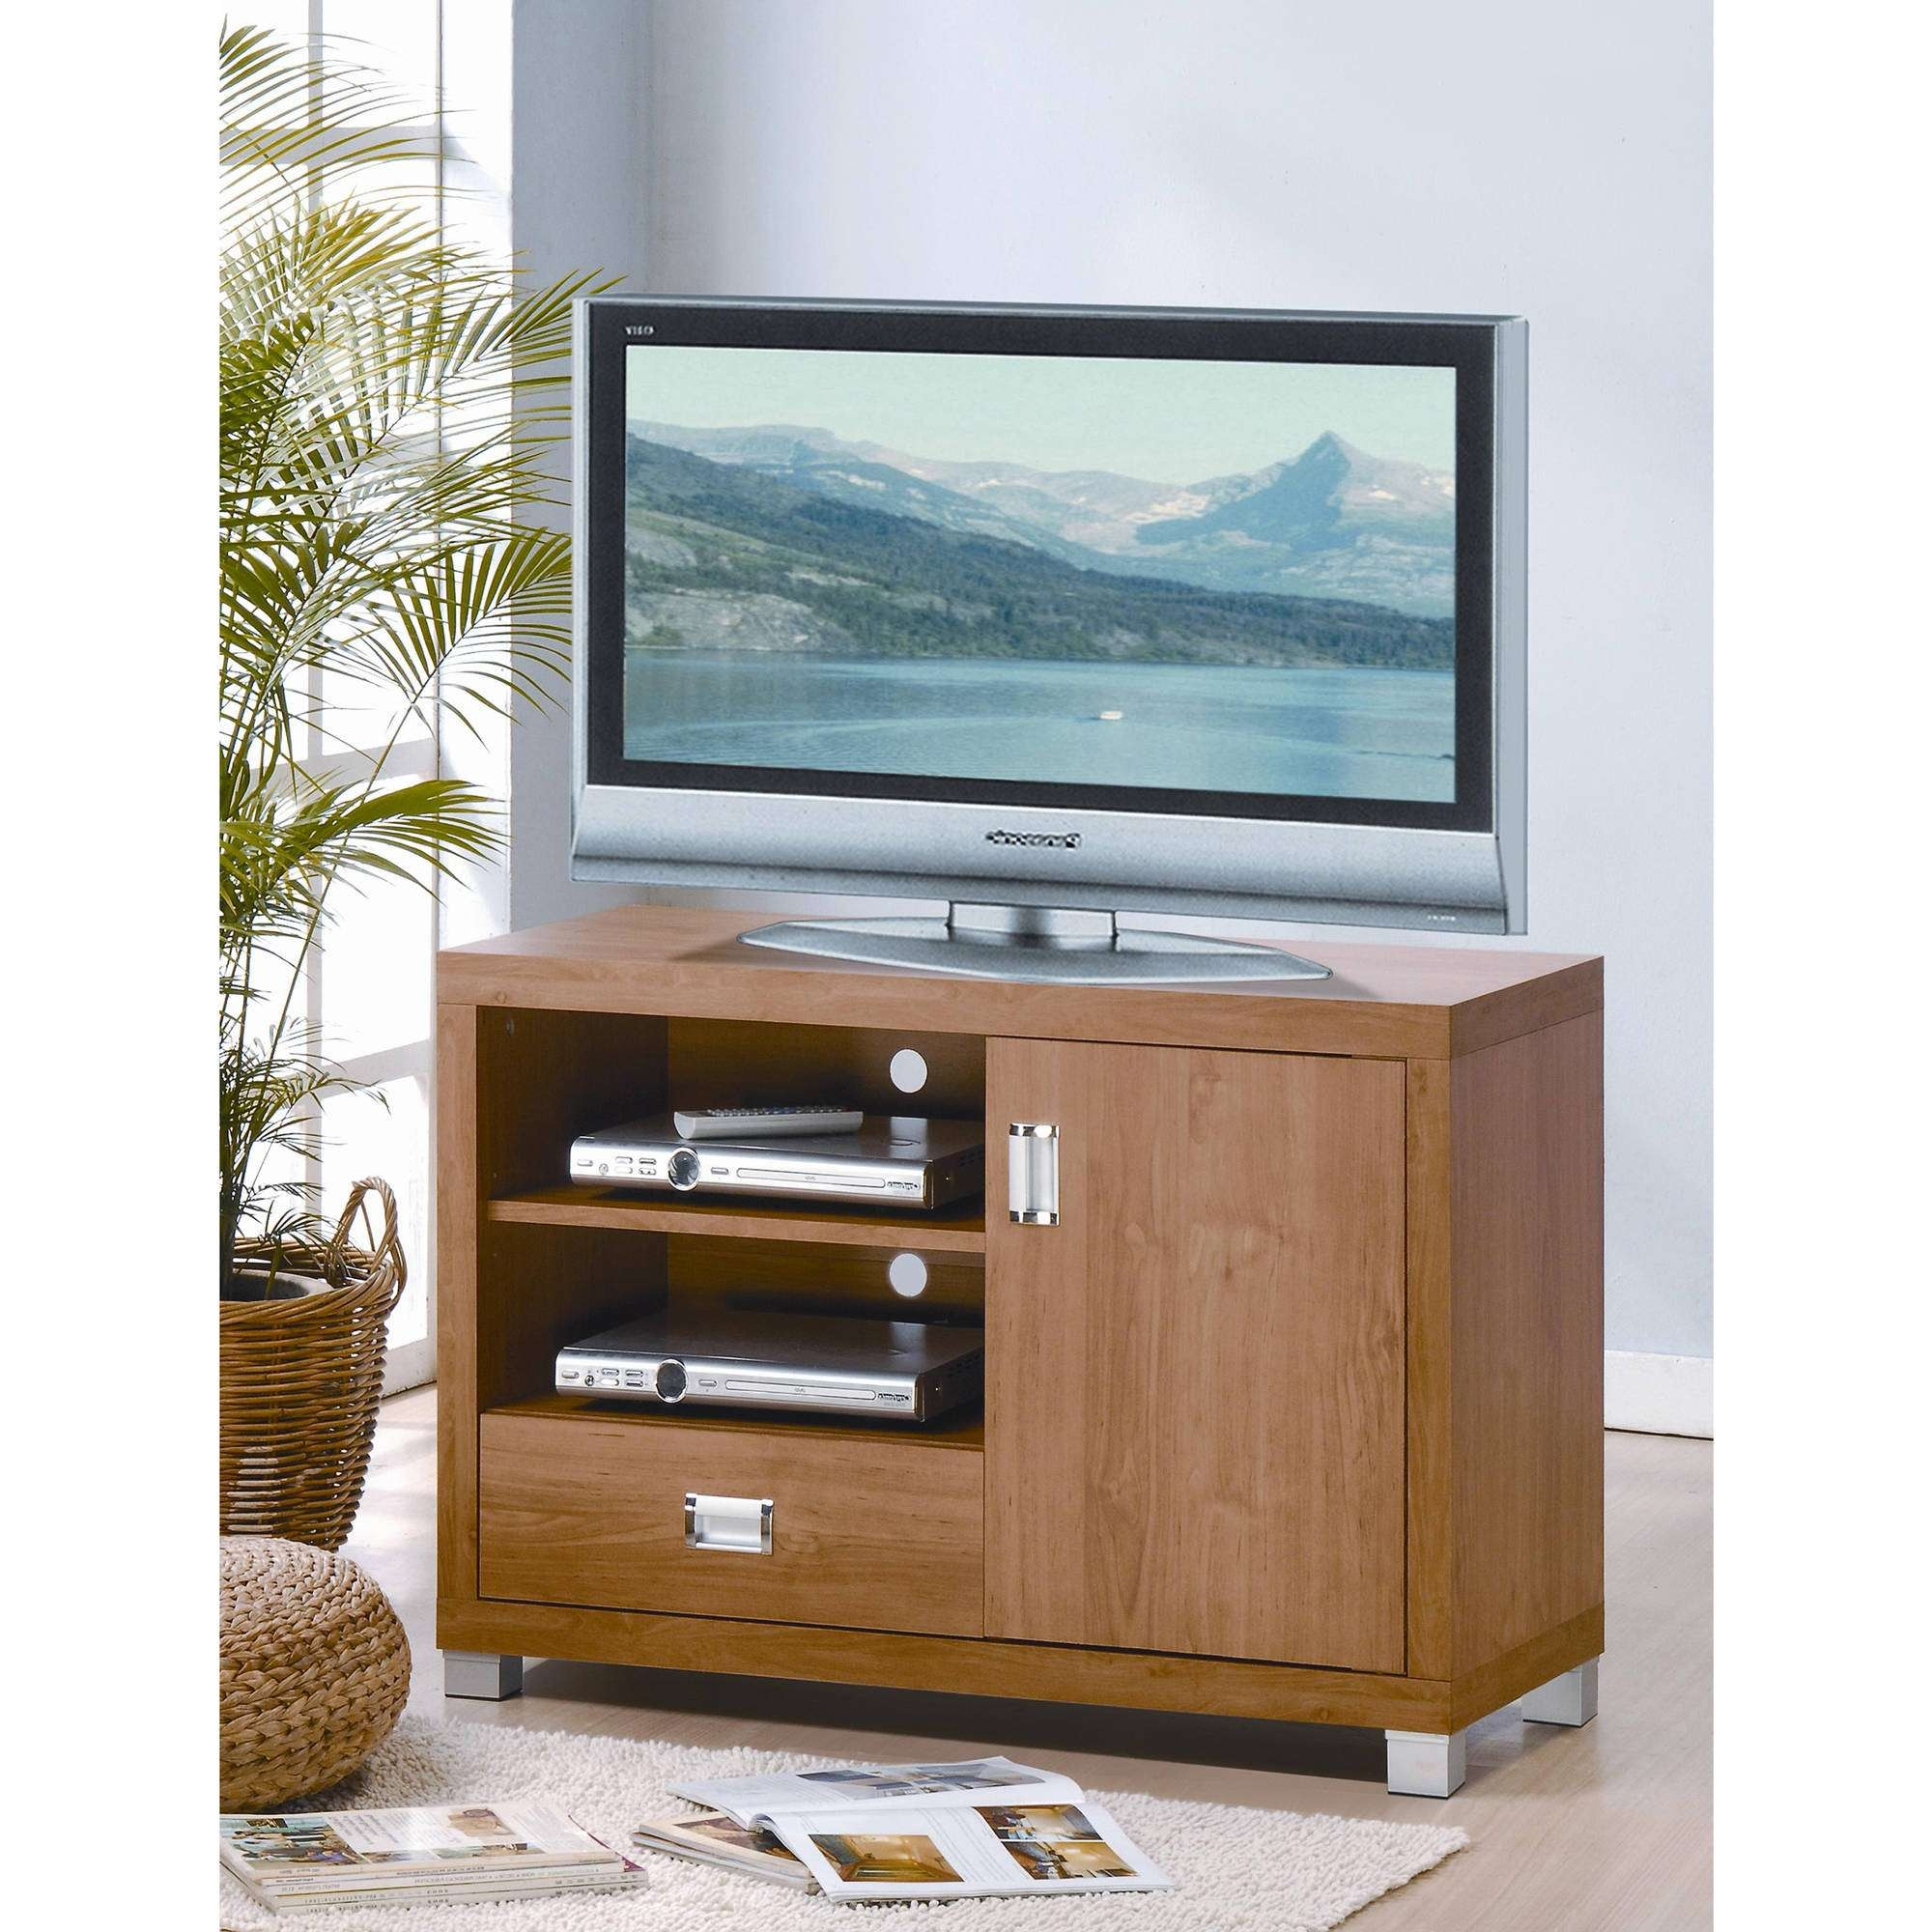 Techni Mobili Tv Cabinet, Maple – Walmart With Regard To Maple Wood Tv Stands (View 7 of 15)